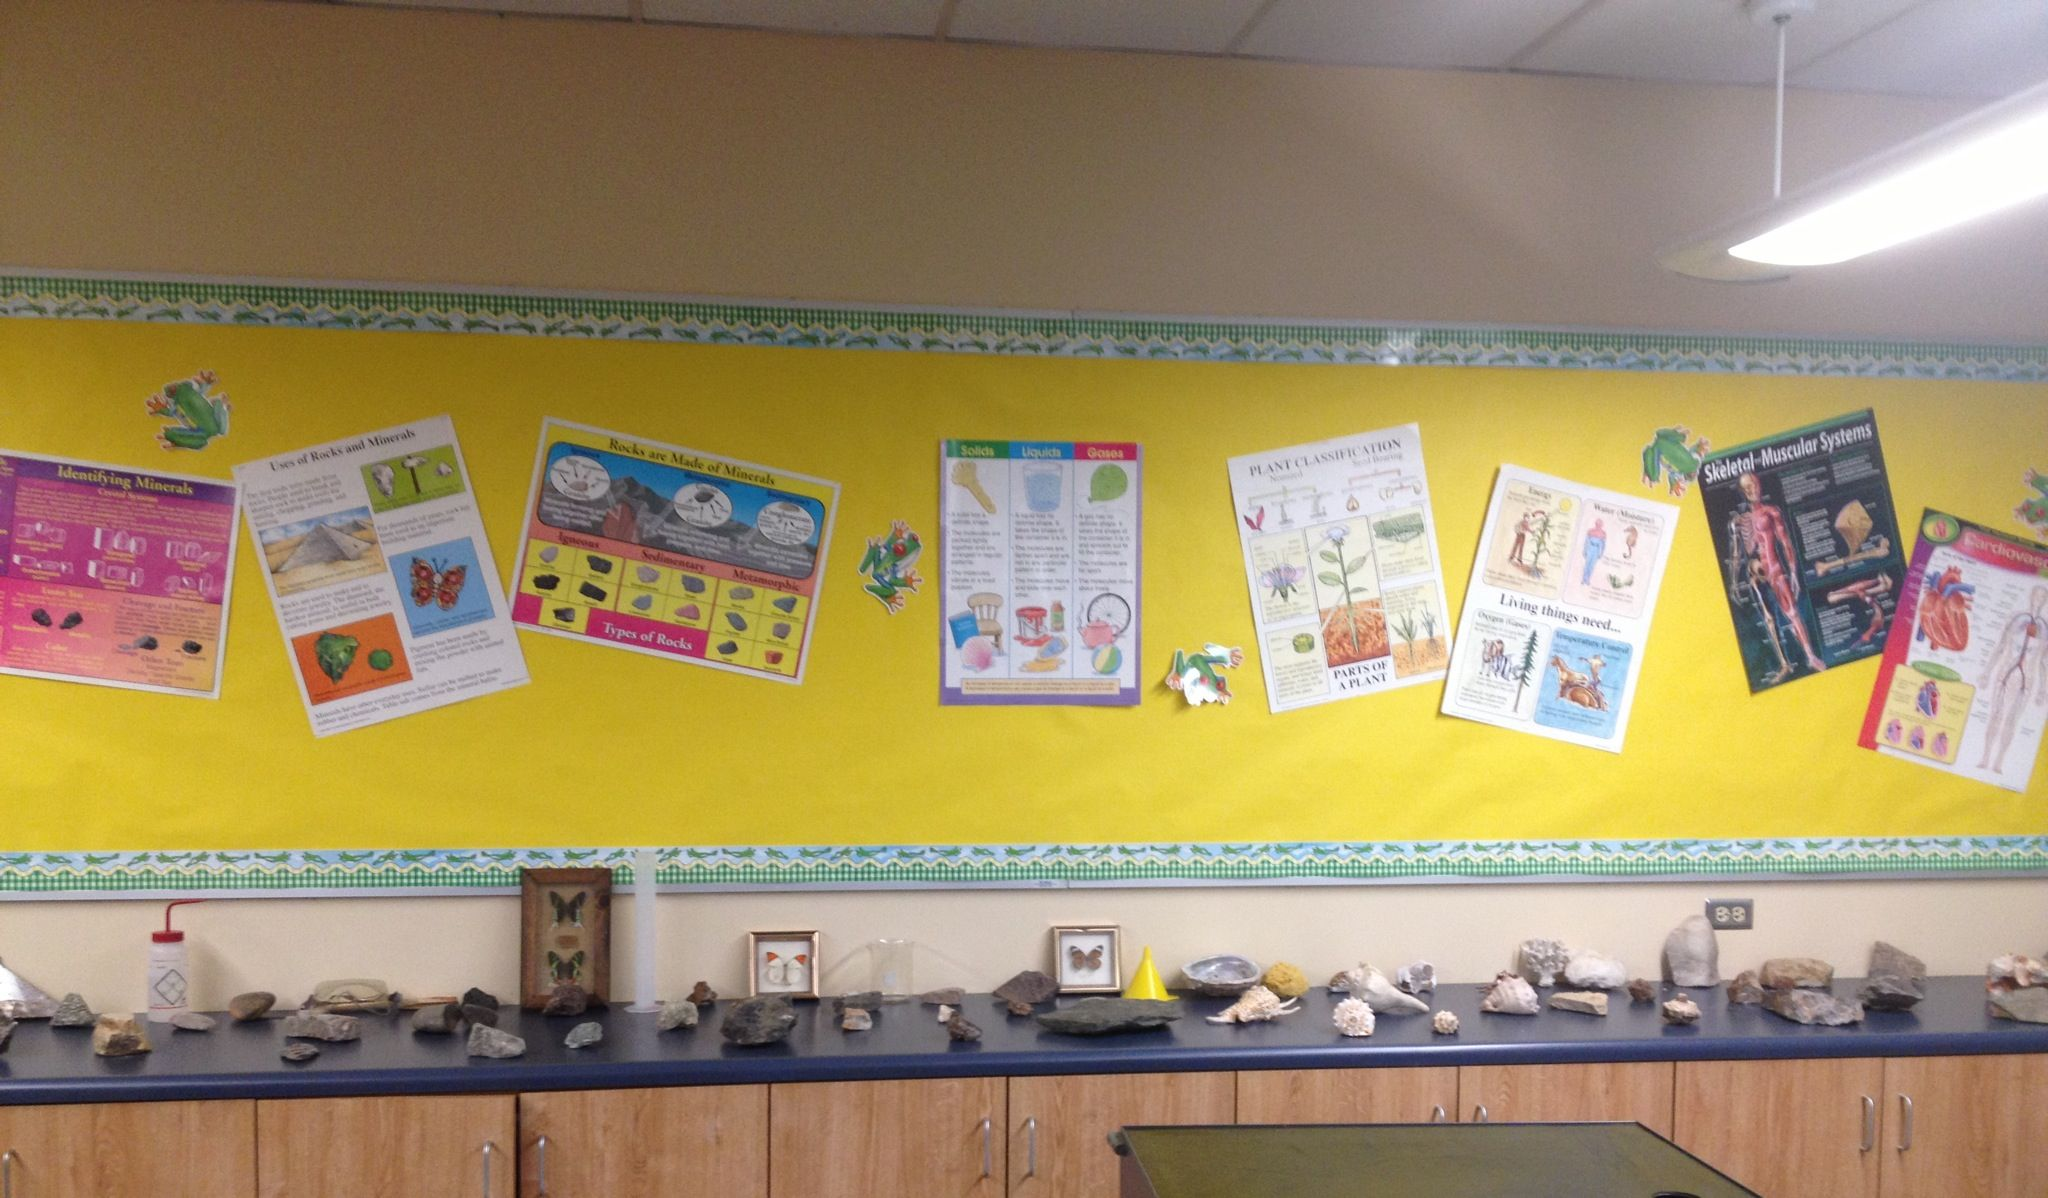 Science Display For 7th Grade Class Posters With Various